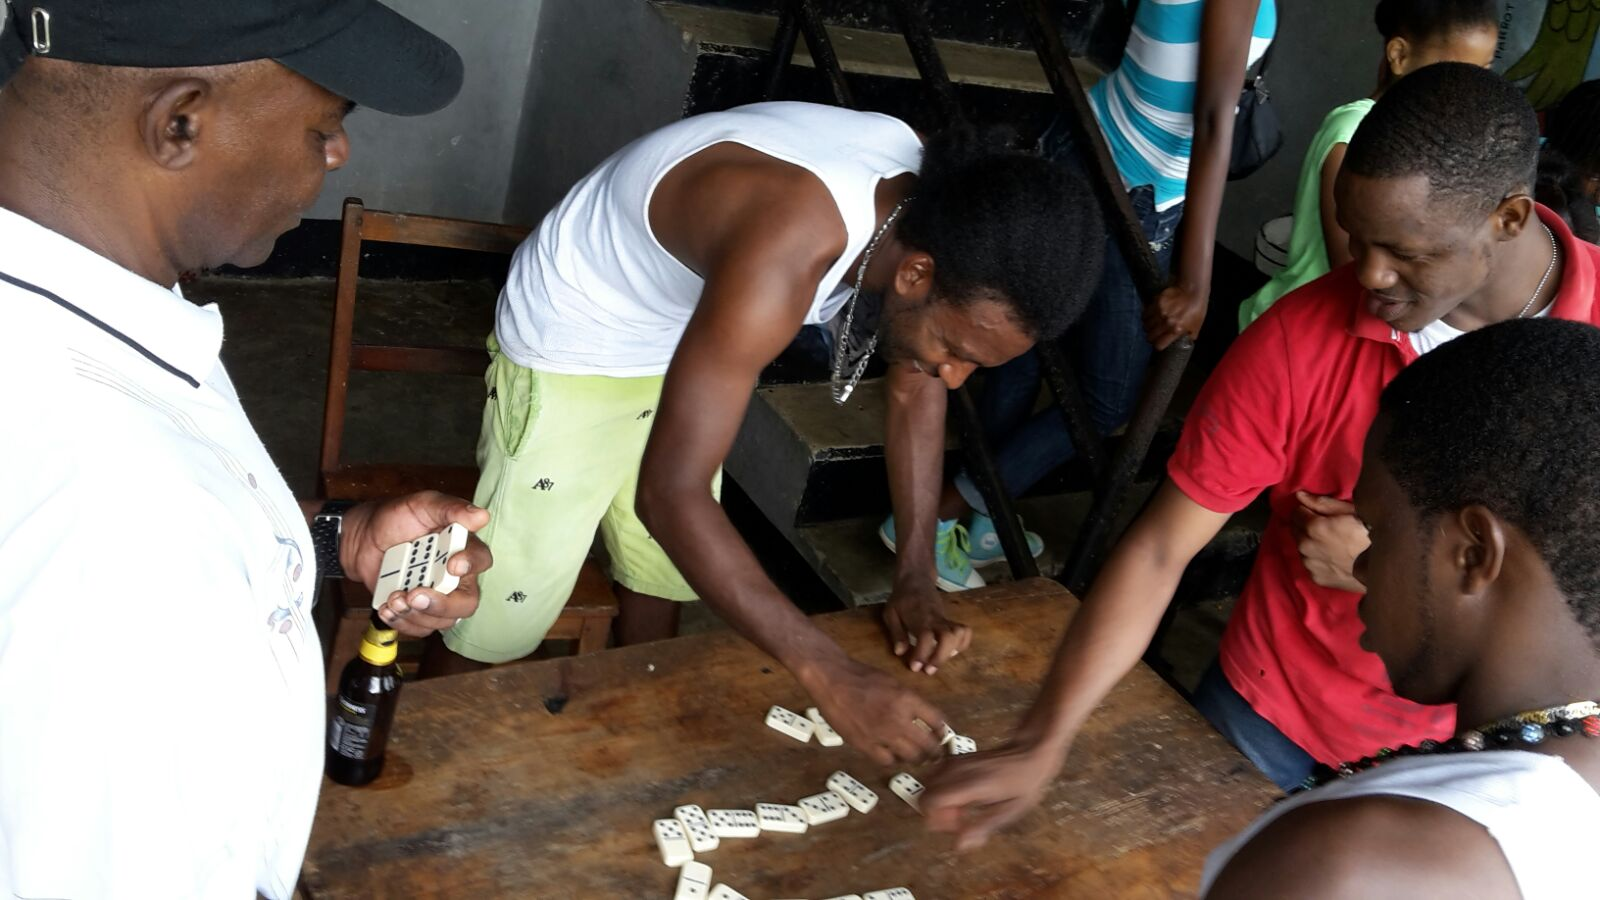 cricket team socializing over a game of domino at barneyside westmoreland jamaica